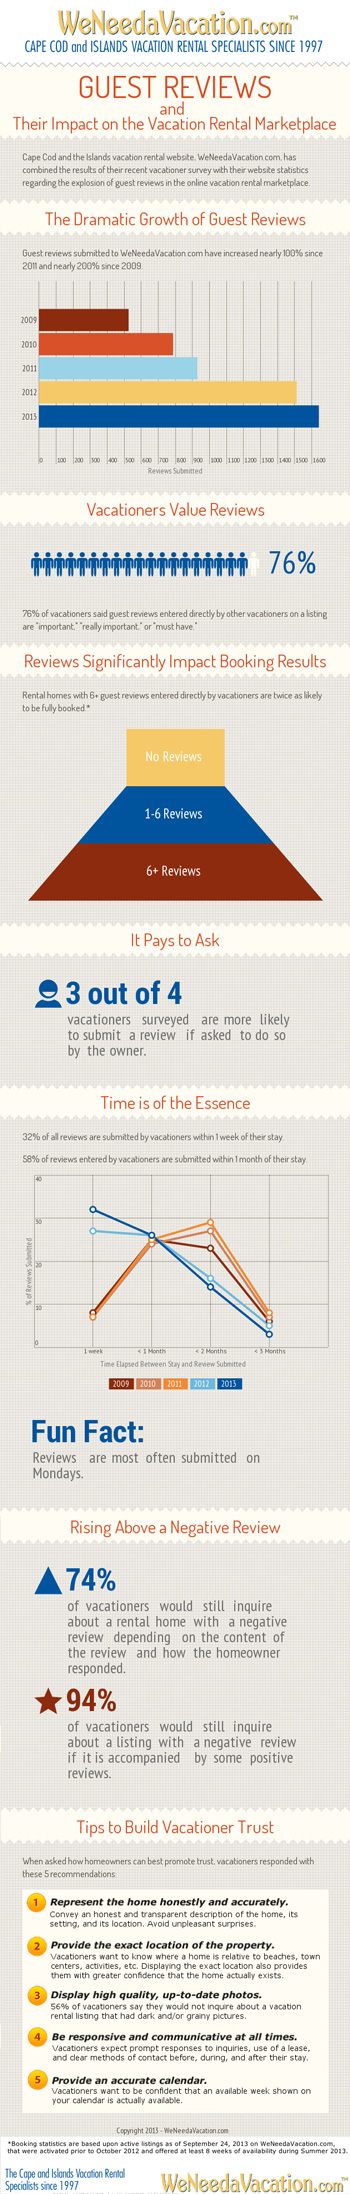 Vacation Rental Guest Reviews infographic